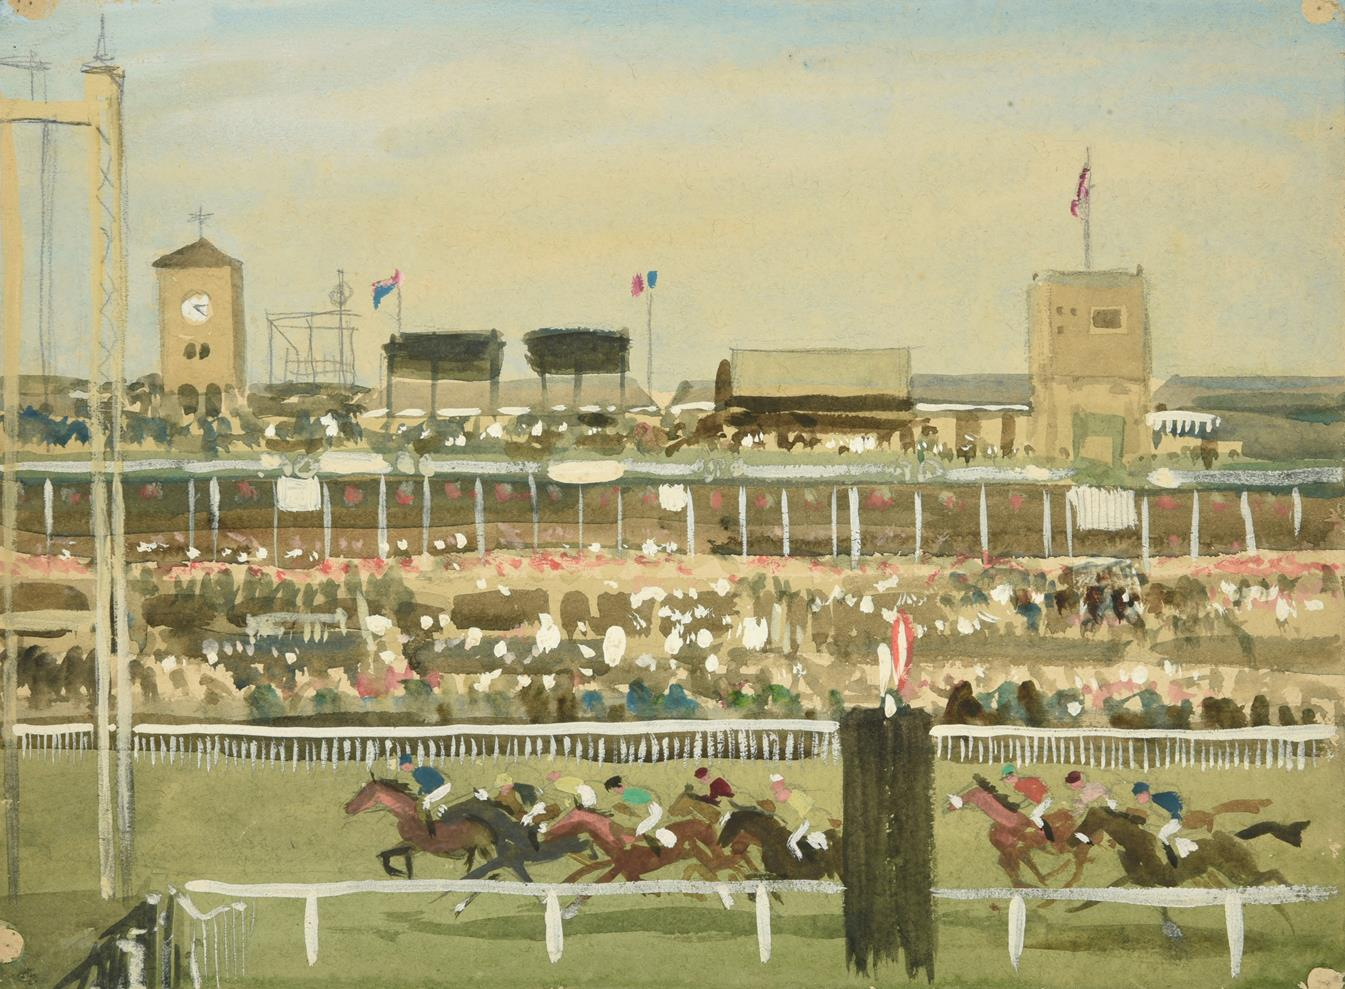 Joseph Appleyard (1908-1960) ''Doncaster, Races'' Mixed media, 28.5cm by 38.5cm (unframed) Artist'